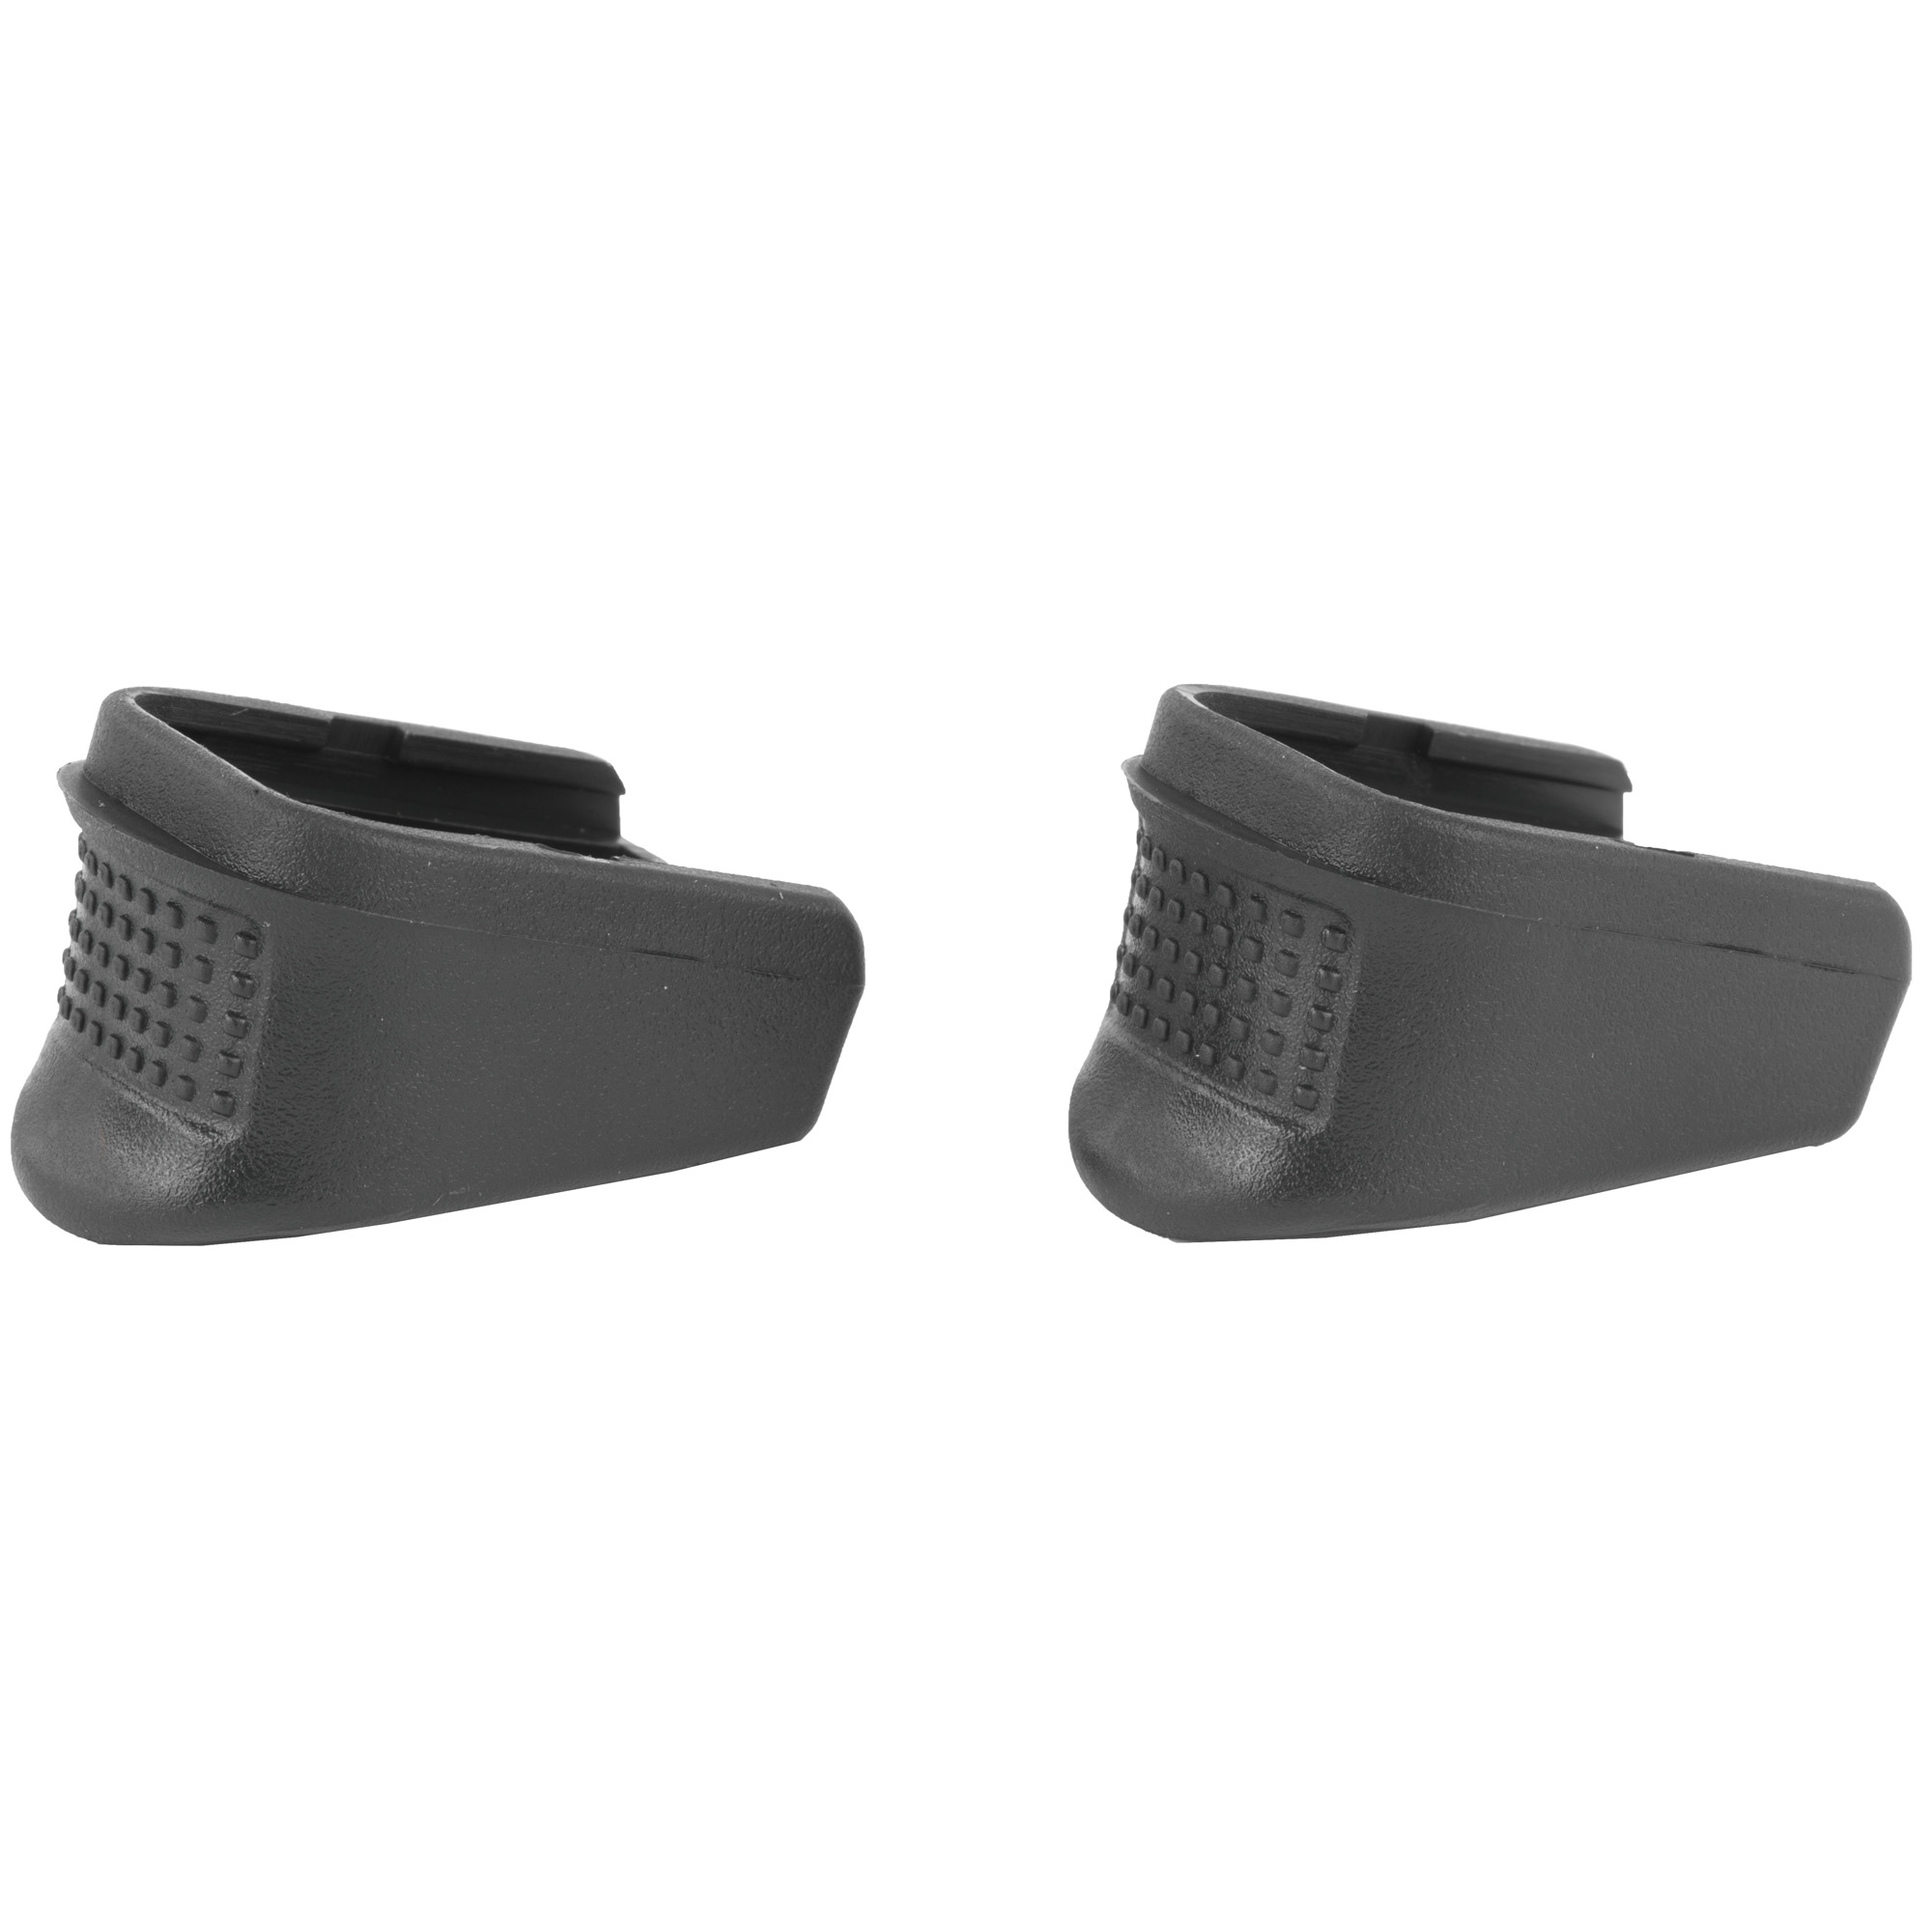 """Pachmayr's new Grip Extenders will greatly increase your control and shooting comfort when added to popular compact and sub-compact handguns. The extensions perfectly match the shape and texture of the handgun and they look like they are part of the pistol rather than an add-on. Extenders are easy to install and are made of tough"""" high strength polymer that stands up to the roughest handling. In addition"""" the Extenders come in a pack of two for a price similar to others on the market that only contain one."""